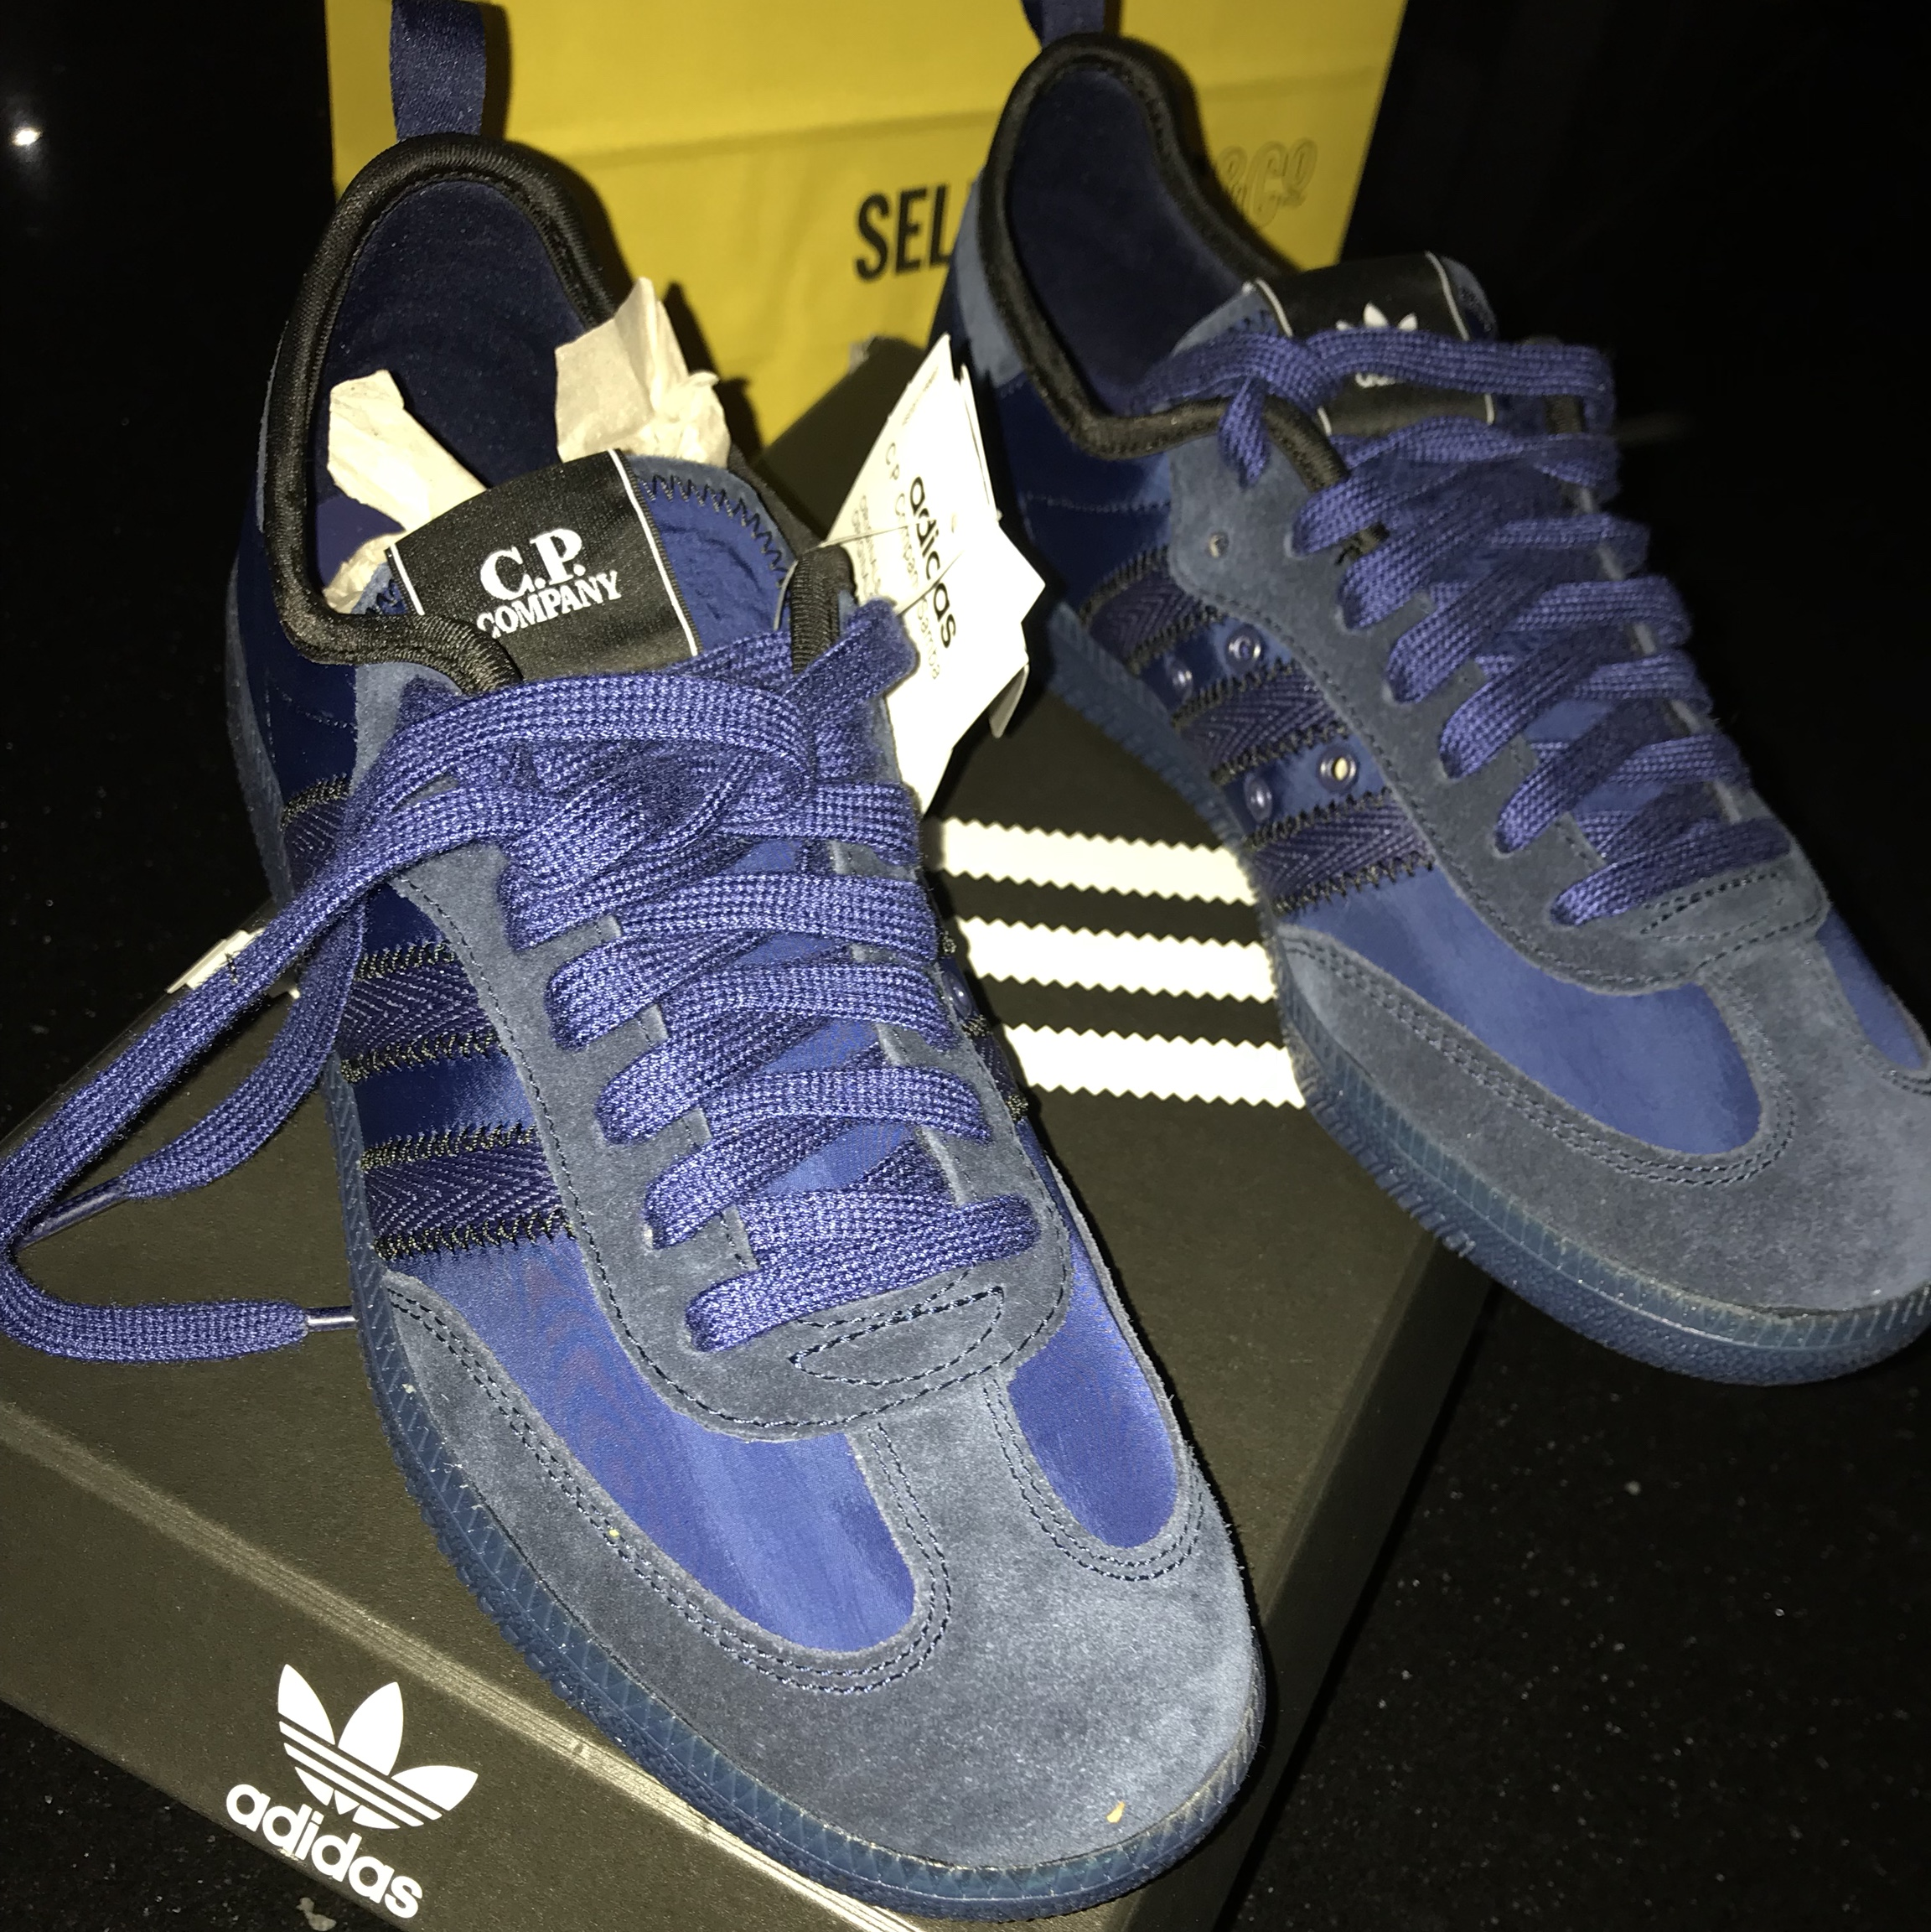 huge selection of 069bf a8186 Adidas CP Company Samba Navy Blue Size 7 UK /... - Depop